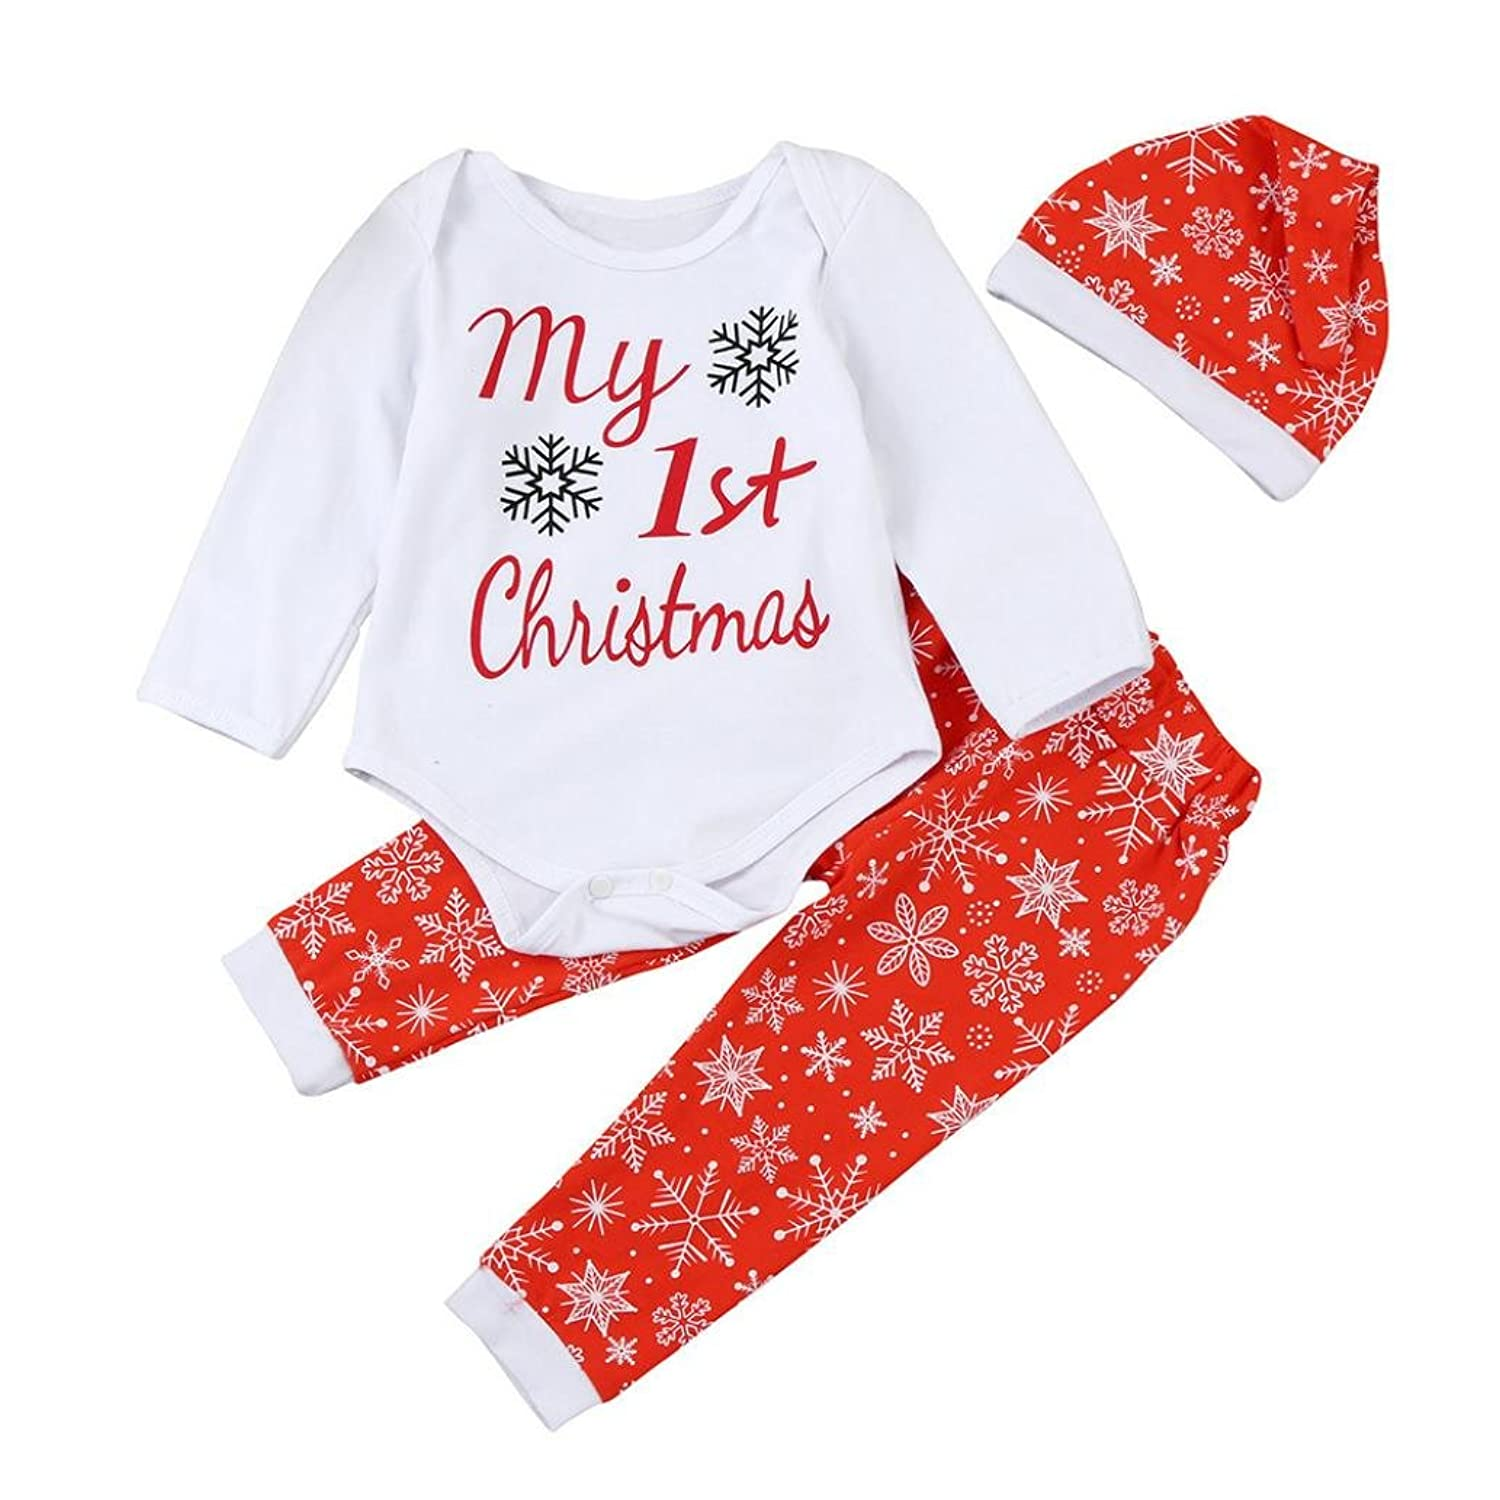 Newborn Infant Christmas Outfits,Matoen Baby Boy Girl Letter Romper ...